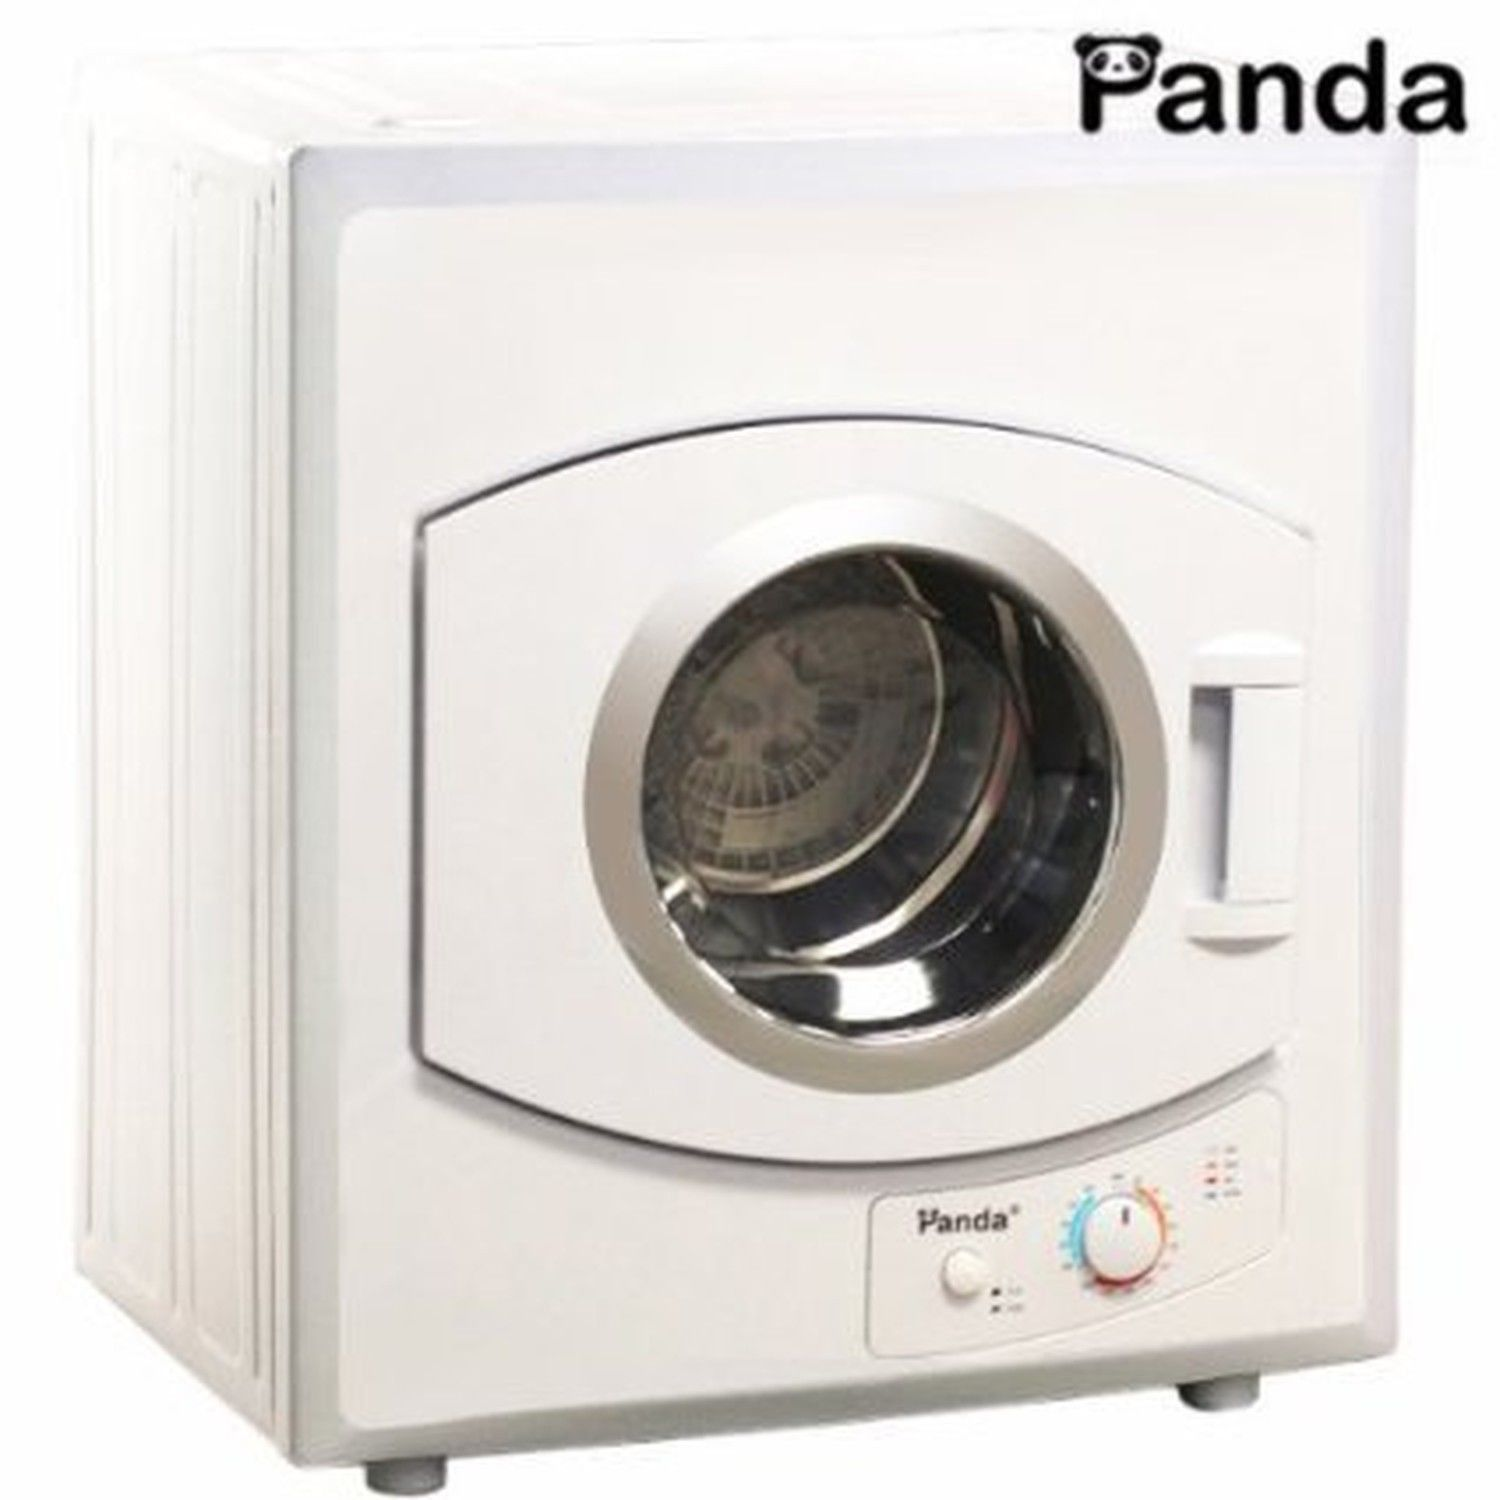 Panda Portable Compact Cloths Dryer Apartment Size 110v stainless ...